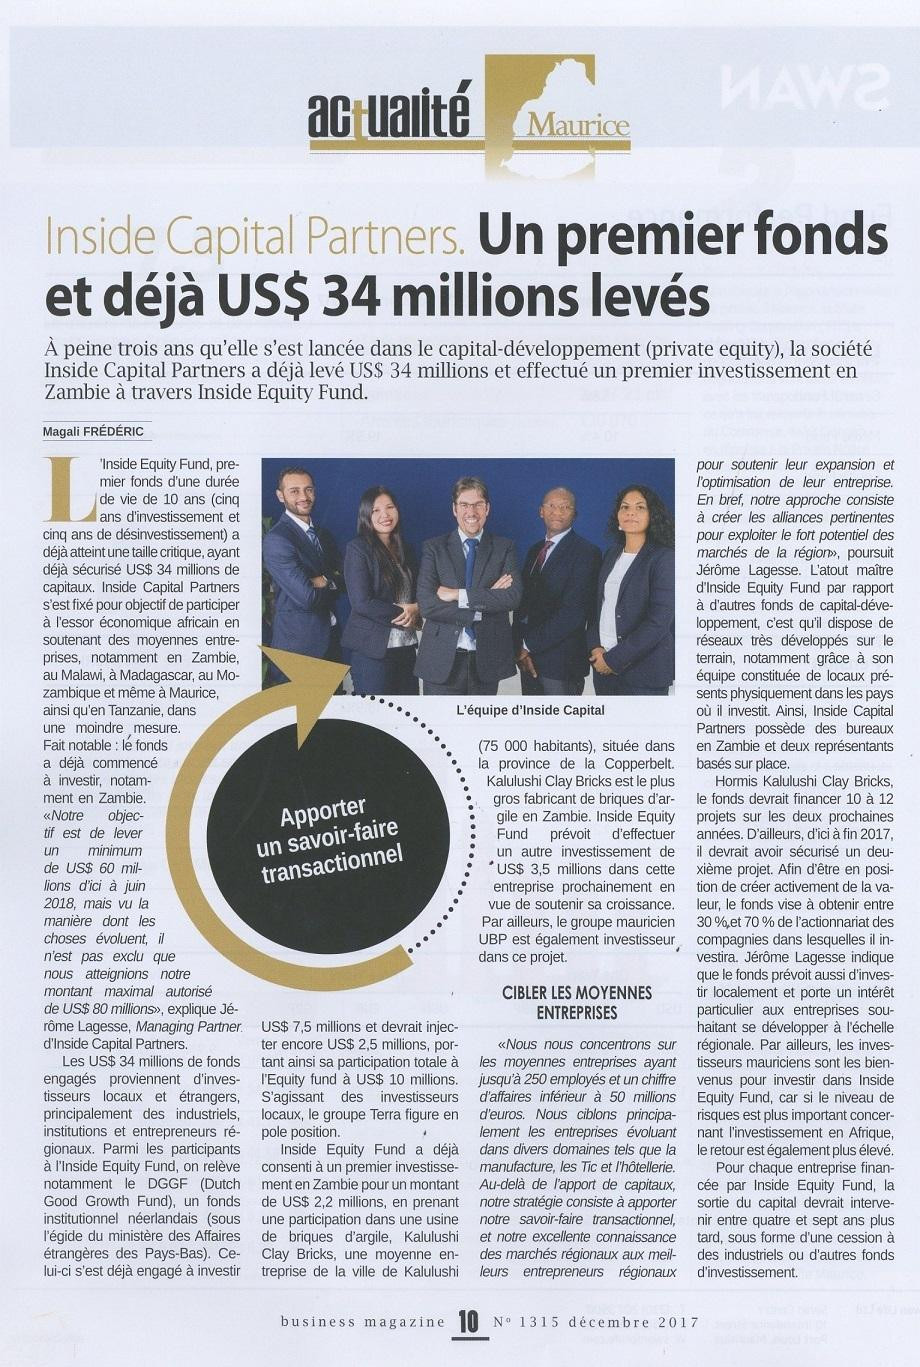 Article in Business Magazine Océan Indien, December 2017 issue